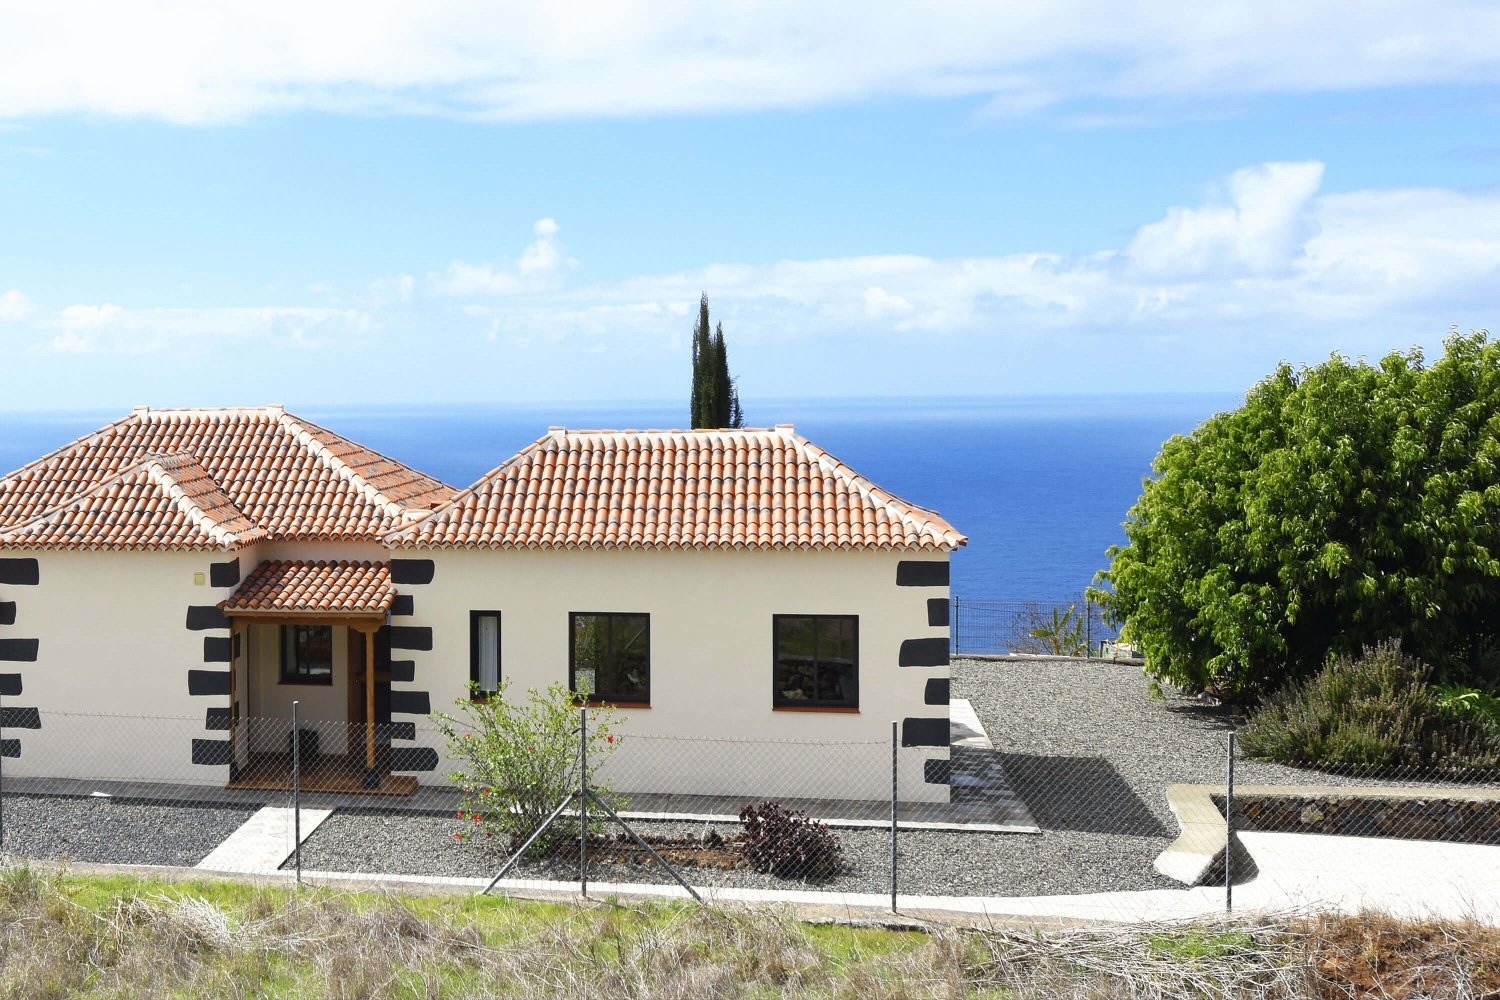 Classic-style holiday house in a rural area with beautiful views towards the sea and the mountains